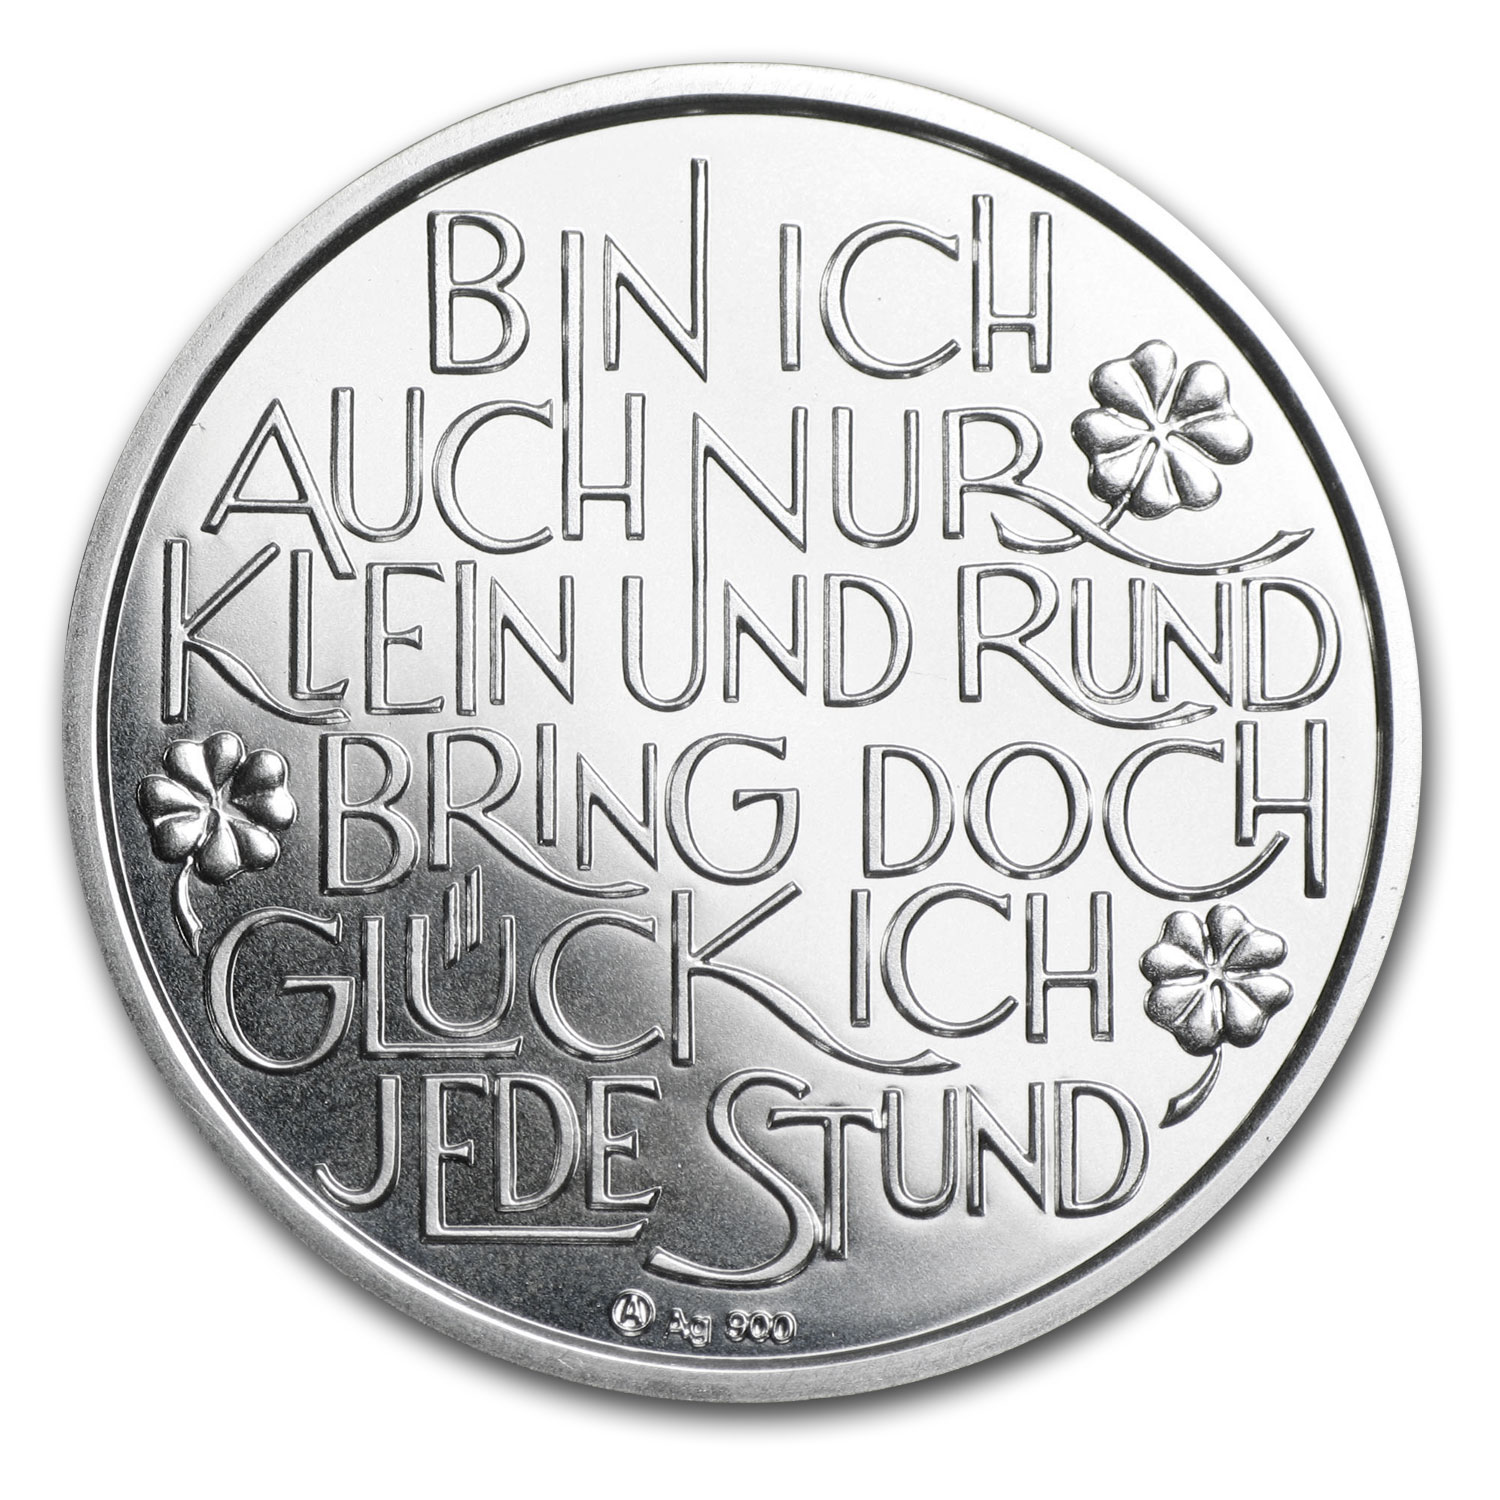 2014 Silver Austrian Glücksjeton Proof (Happy New Year)